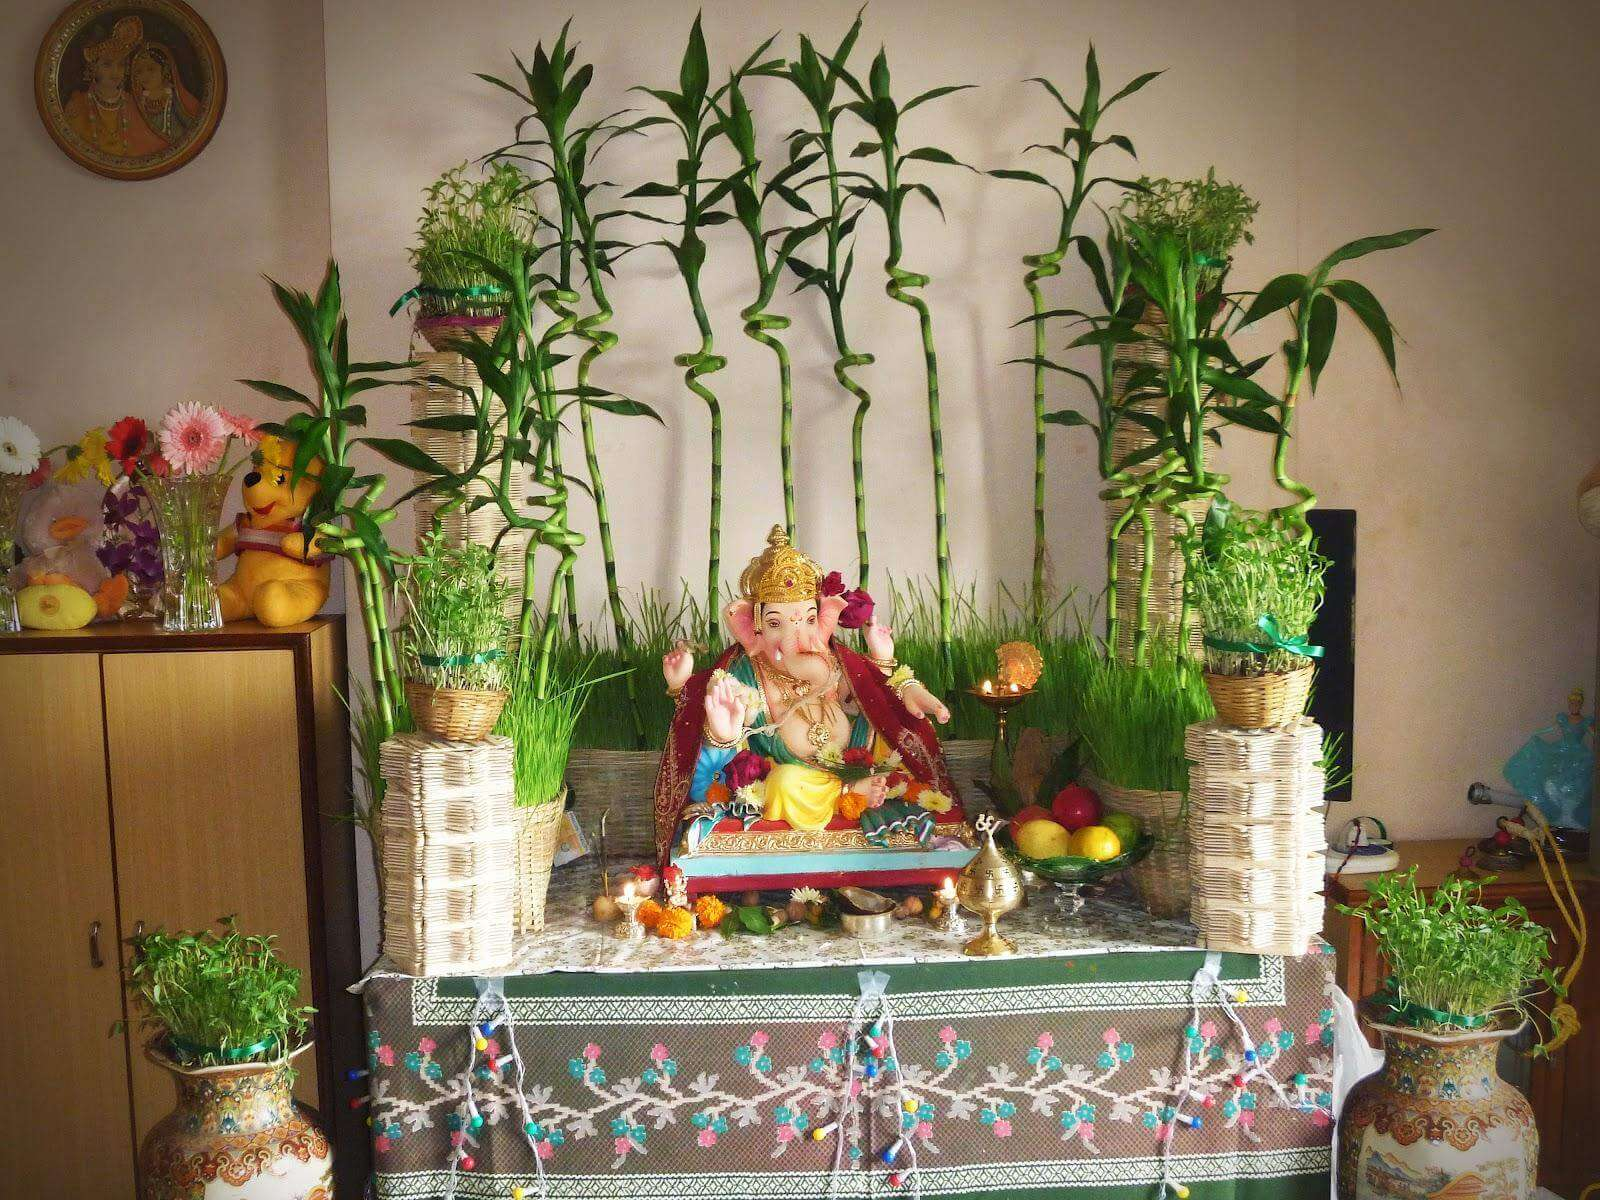 buy online flowers for ganpati decoration blooms only